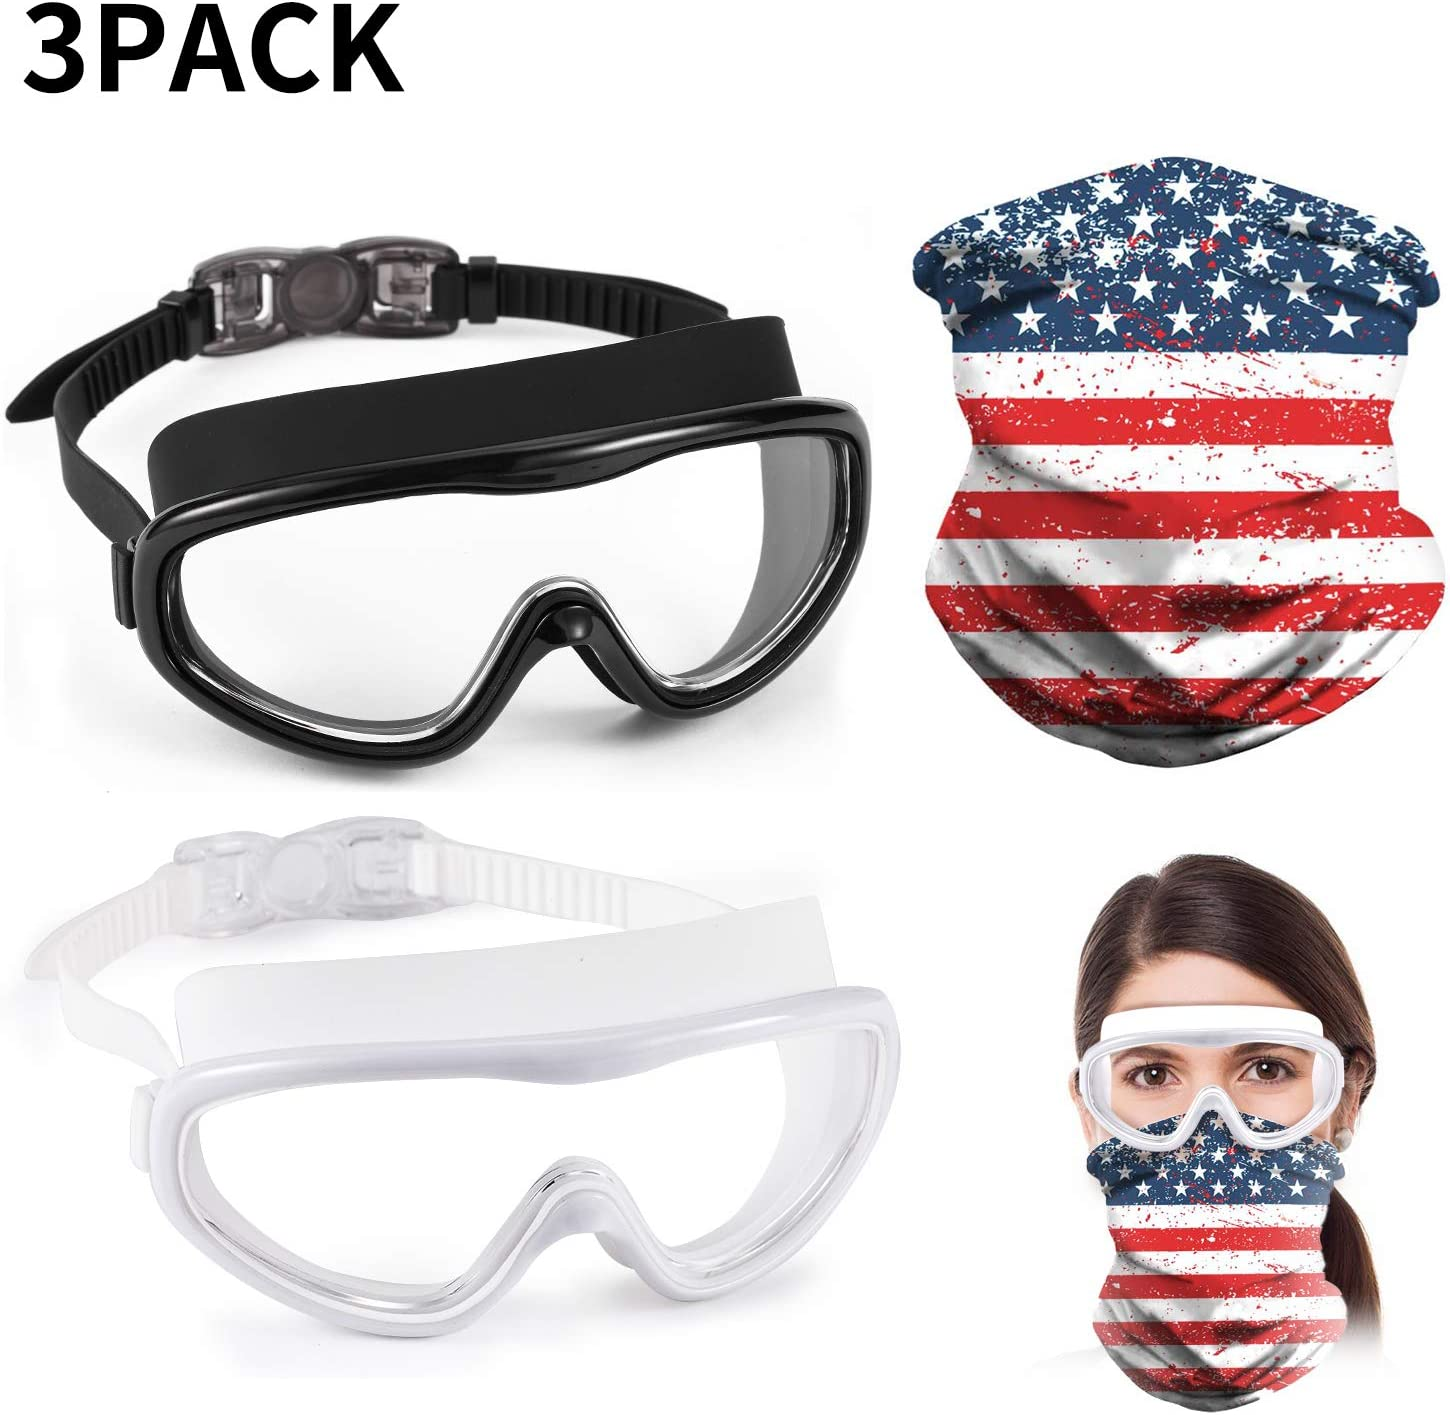 Fpxnb 3 Pack Swim Goggles with Face Mask, 2 Pairs of Clear Swimming Eyewear Glasses Anti Fog Waterproof Lens Adjustable Head Strap, for Men Women, Mask for Block Protecting Nose Mouth, Black White